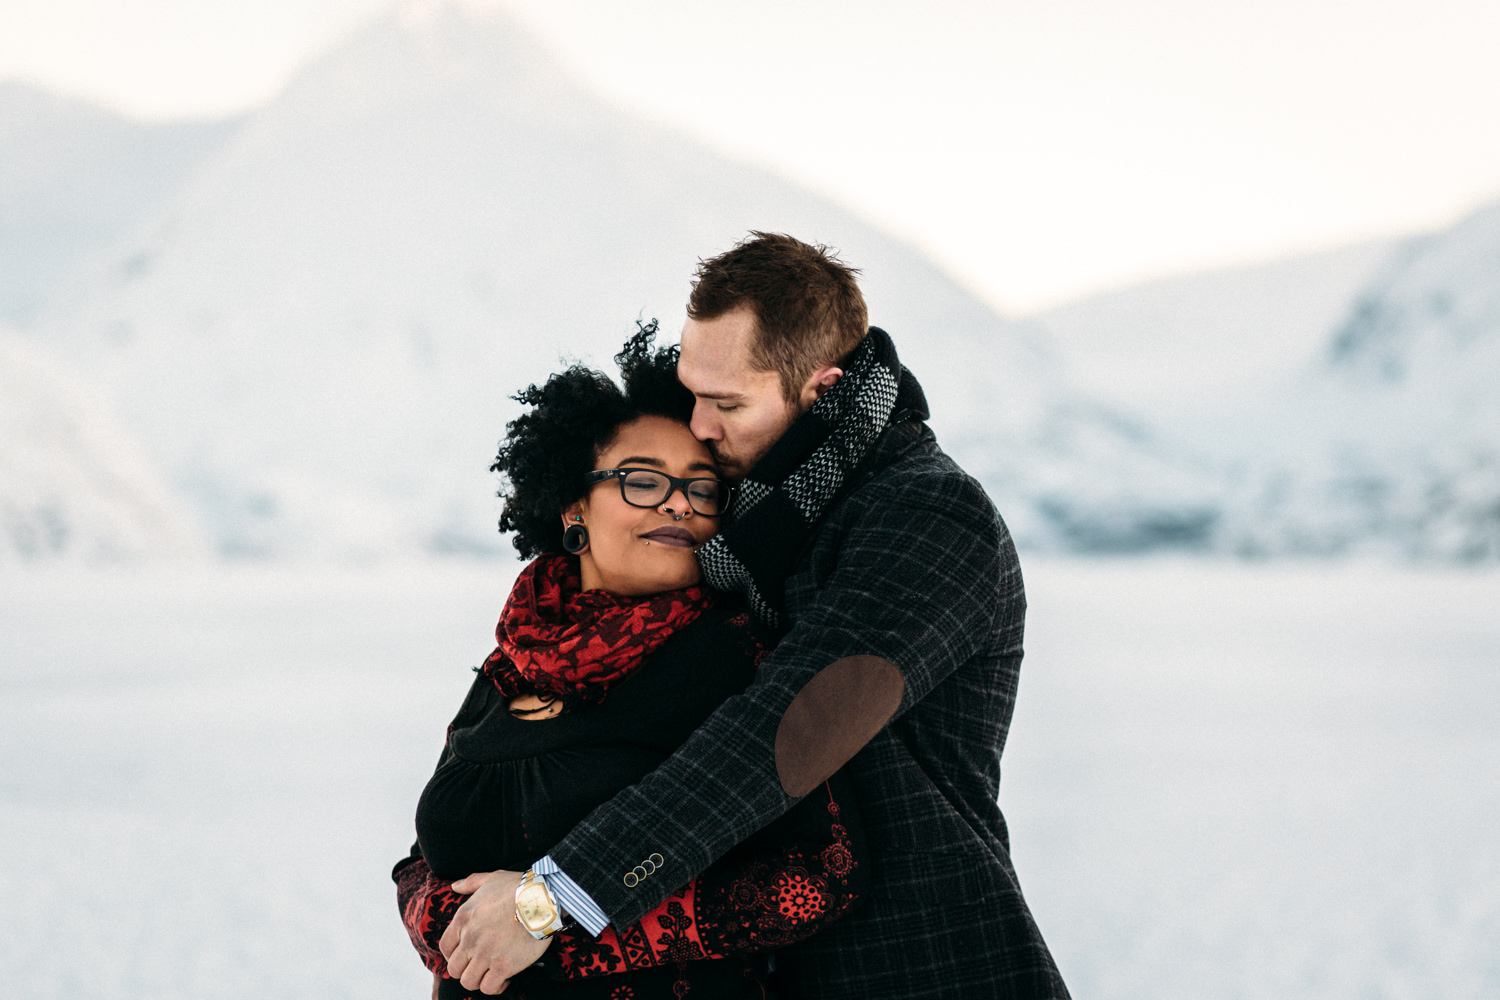 Couple staying warm during snowy Alaskan weather